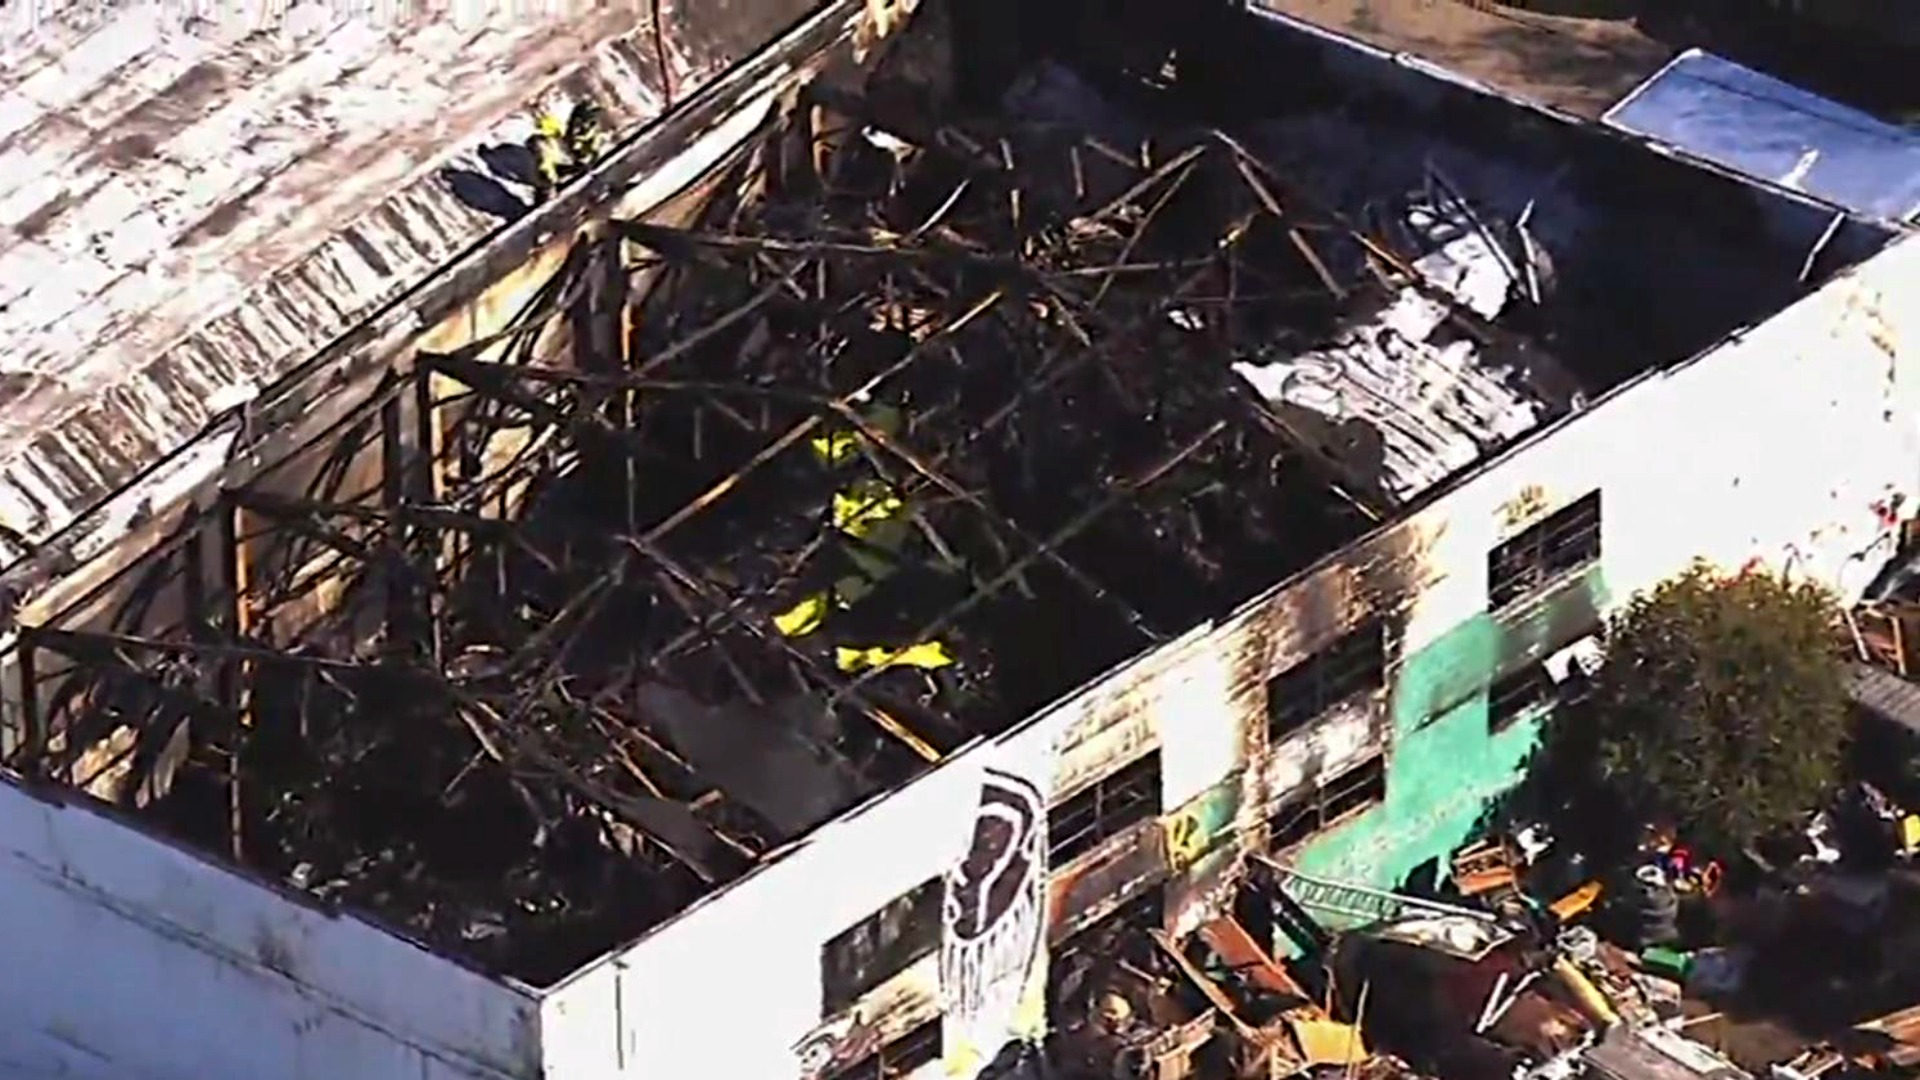 Aerial footage of the badly damaged Oakland warehouse. (Dec. 3, 2016)